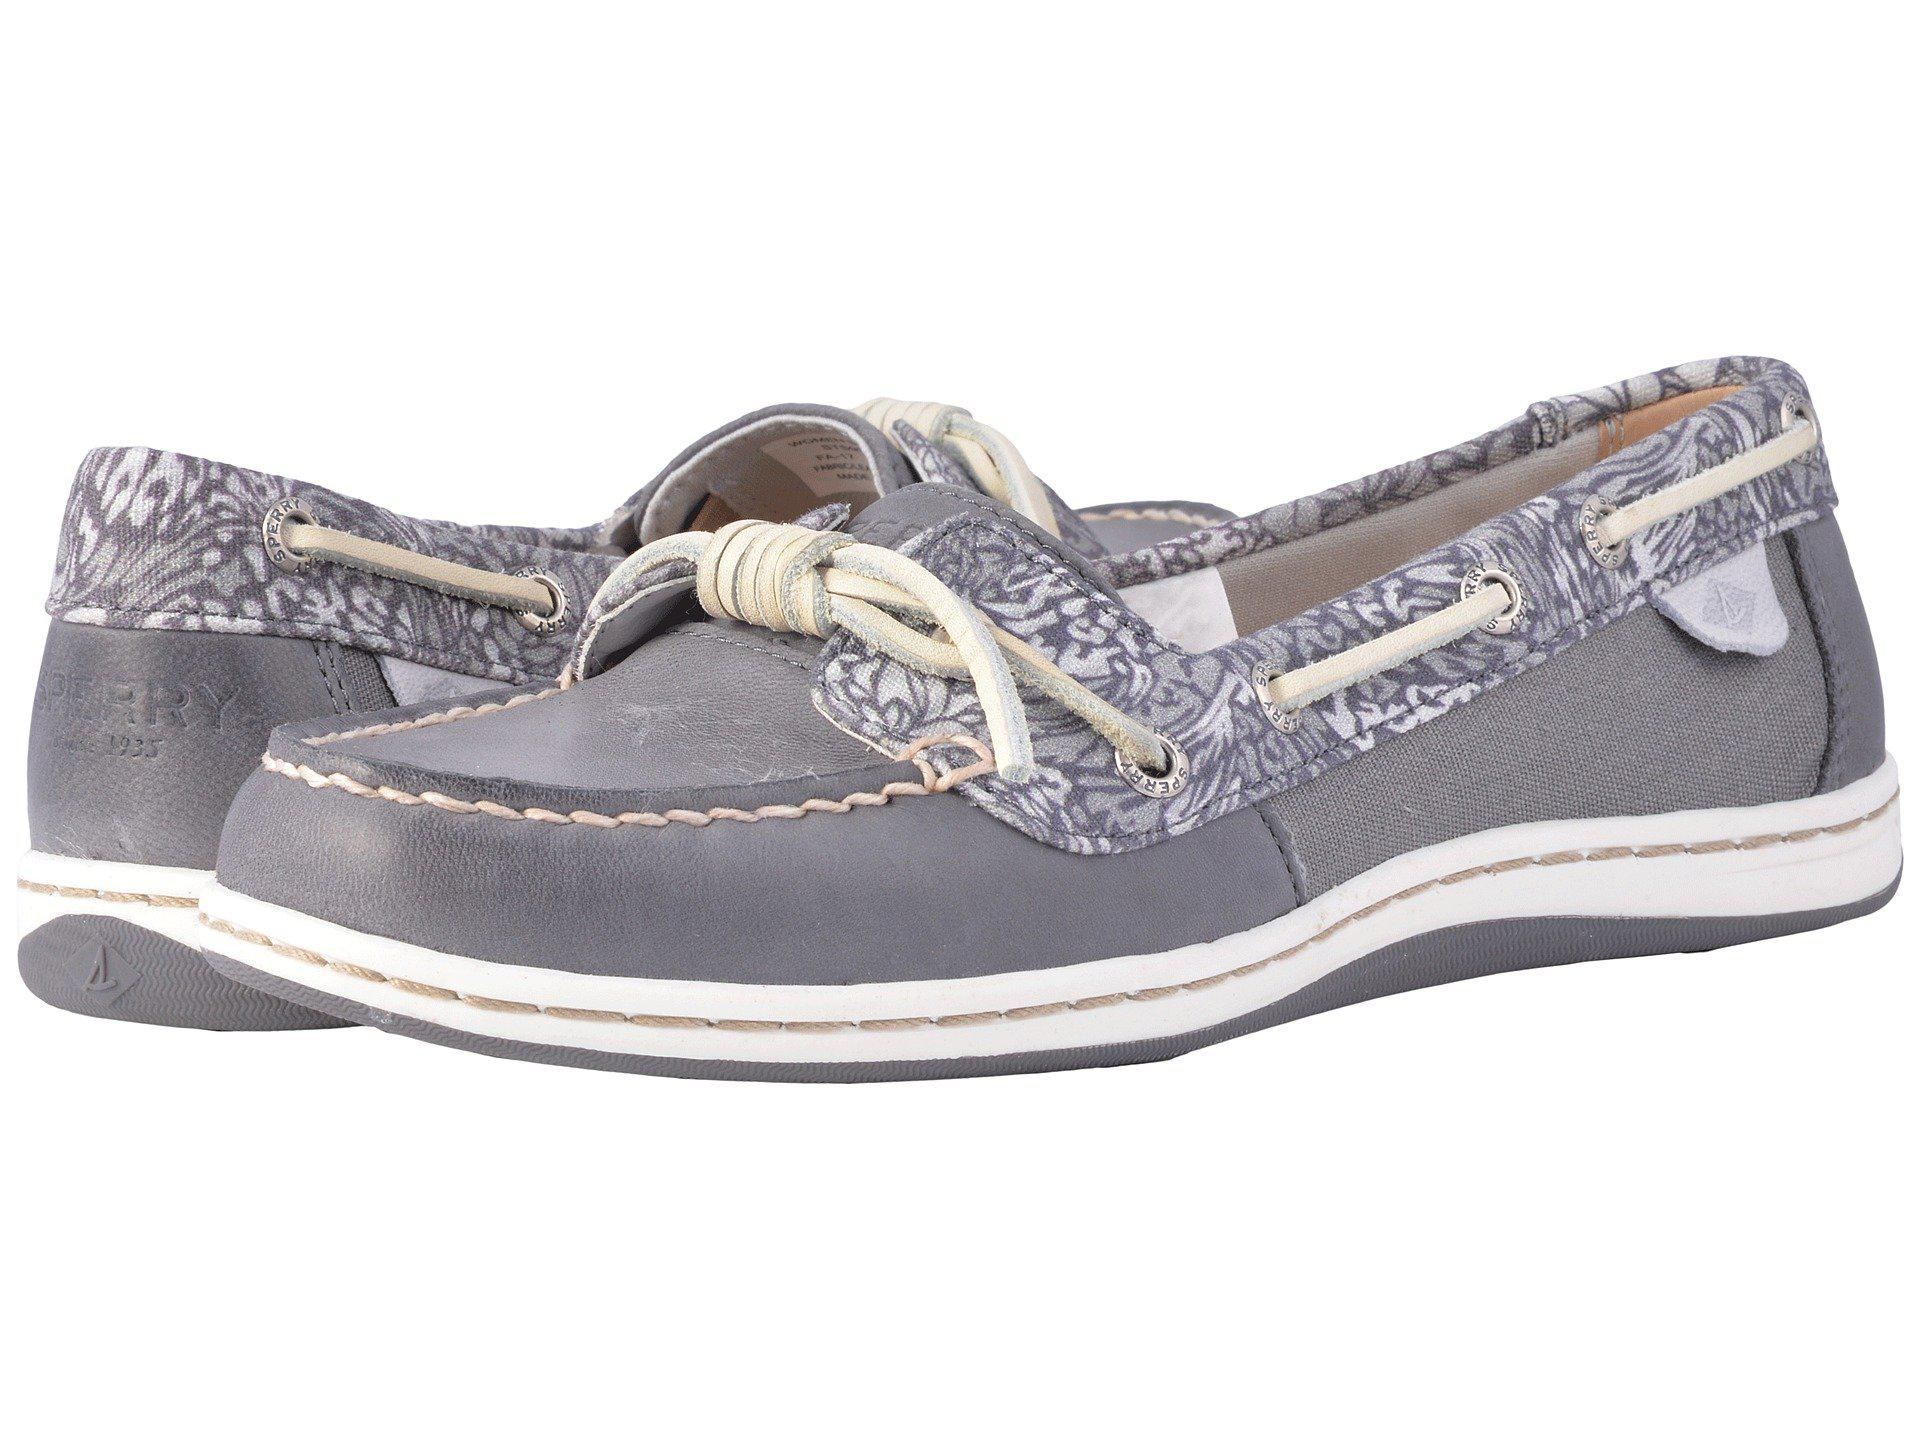 49fbbb95f922 Sperry Top-Sider Barrelfish Animal Print in Gray - Lyst